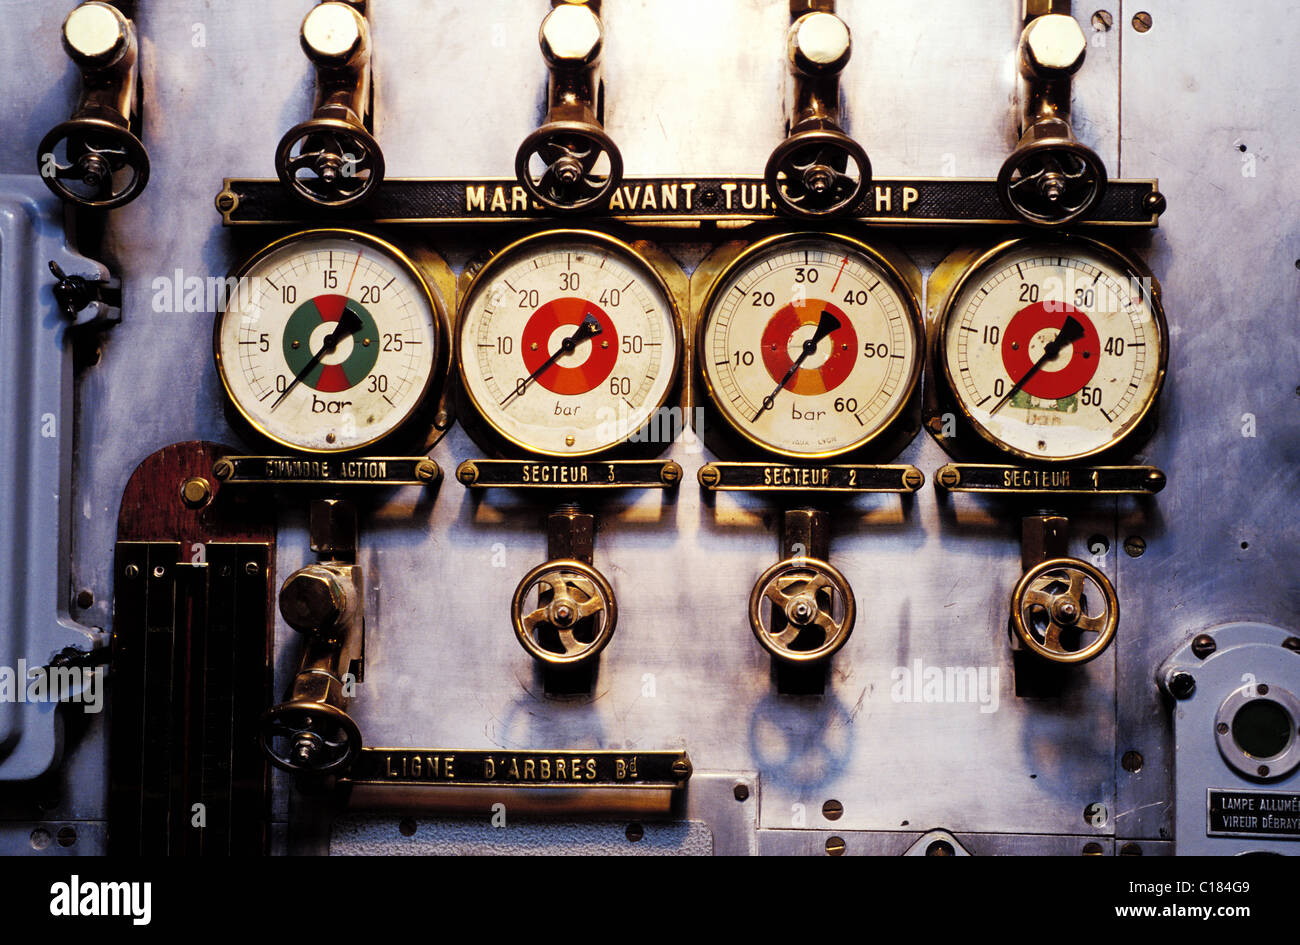 France, Finistere, Brest city, antique dials at the Navy Museum - Stock Image